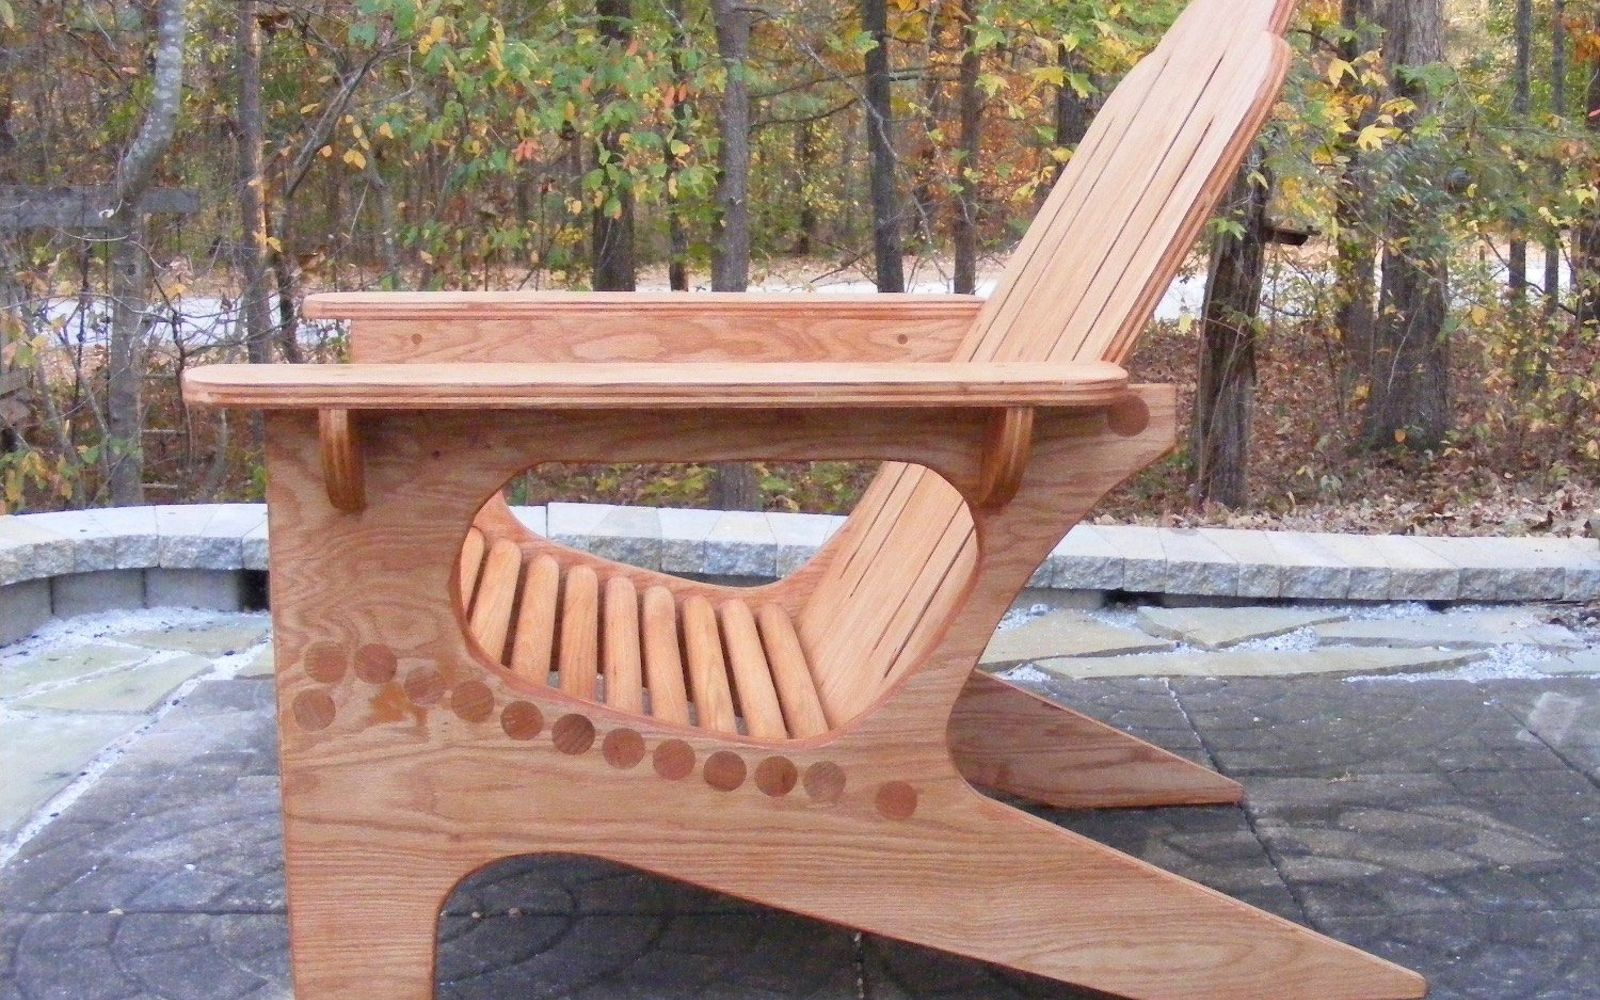 s 12 pool chair ideas we never would have thought of, Build Your Own Adirondack Chair